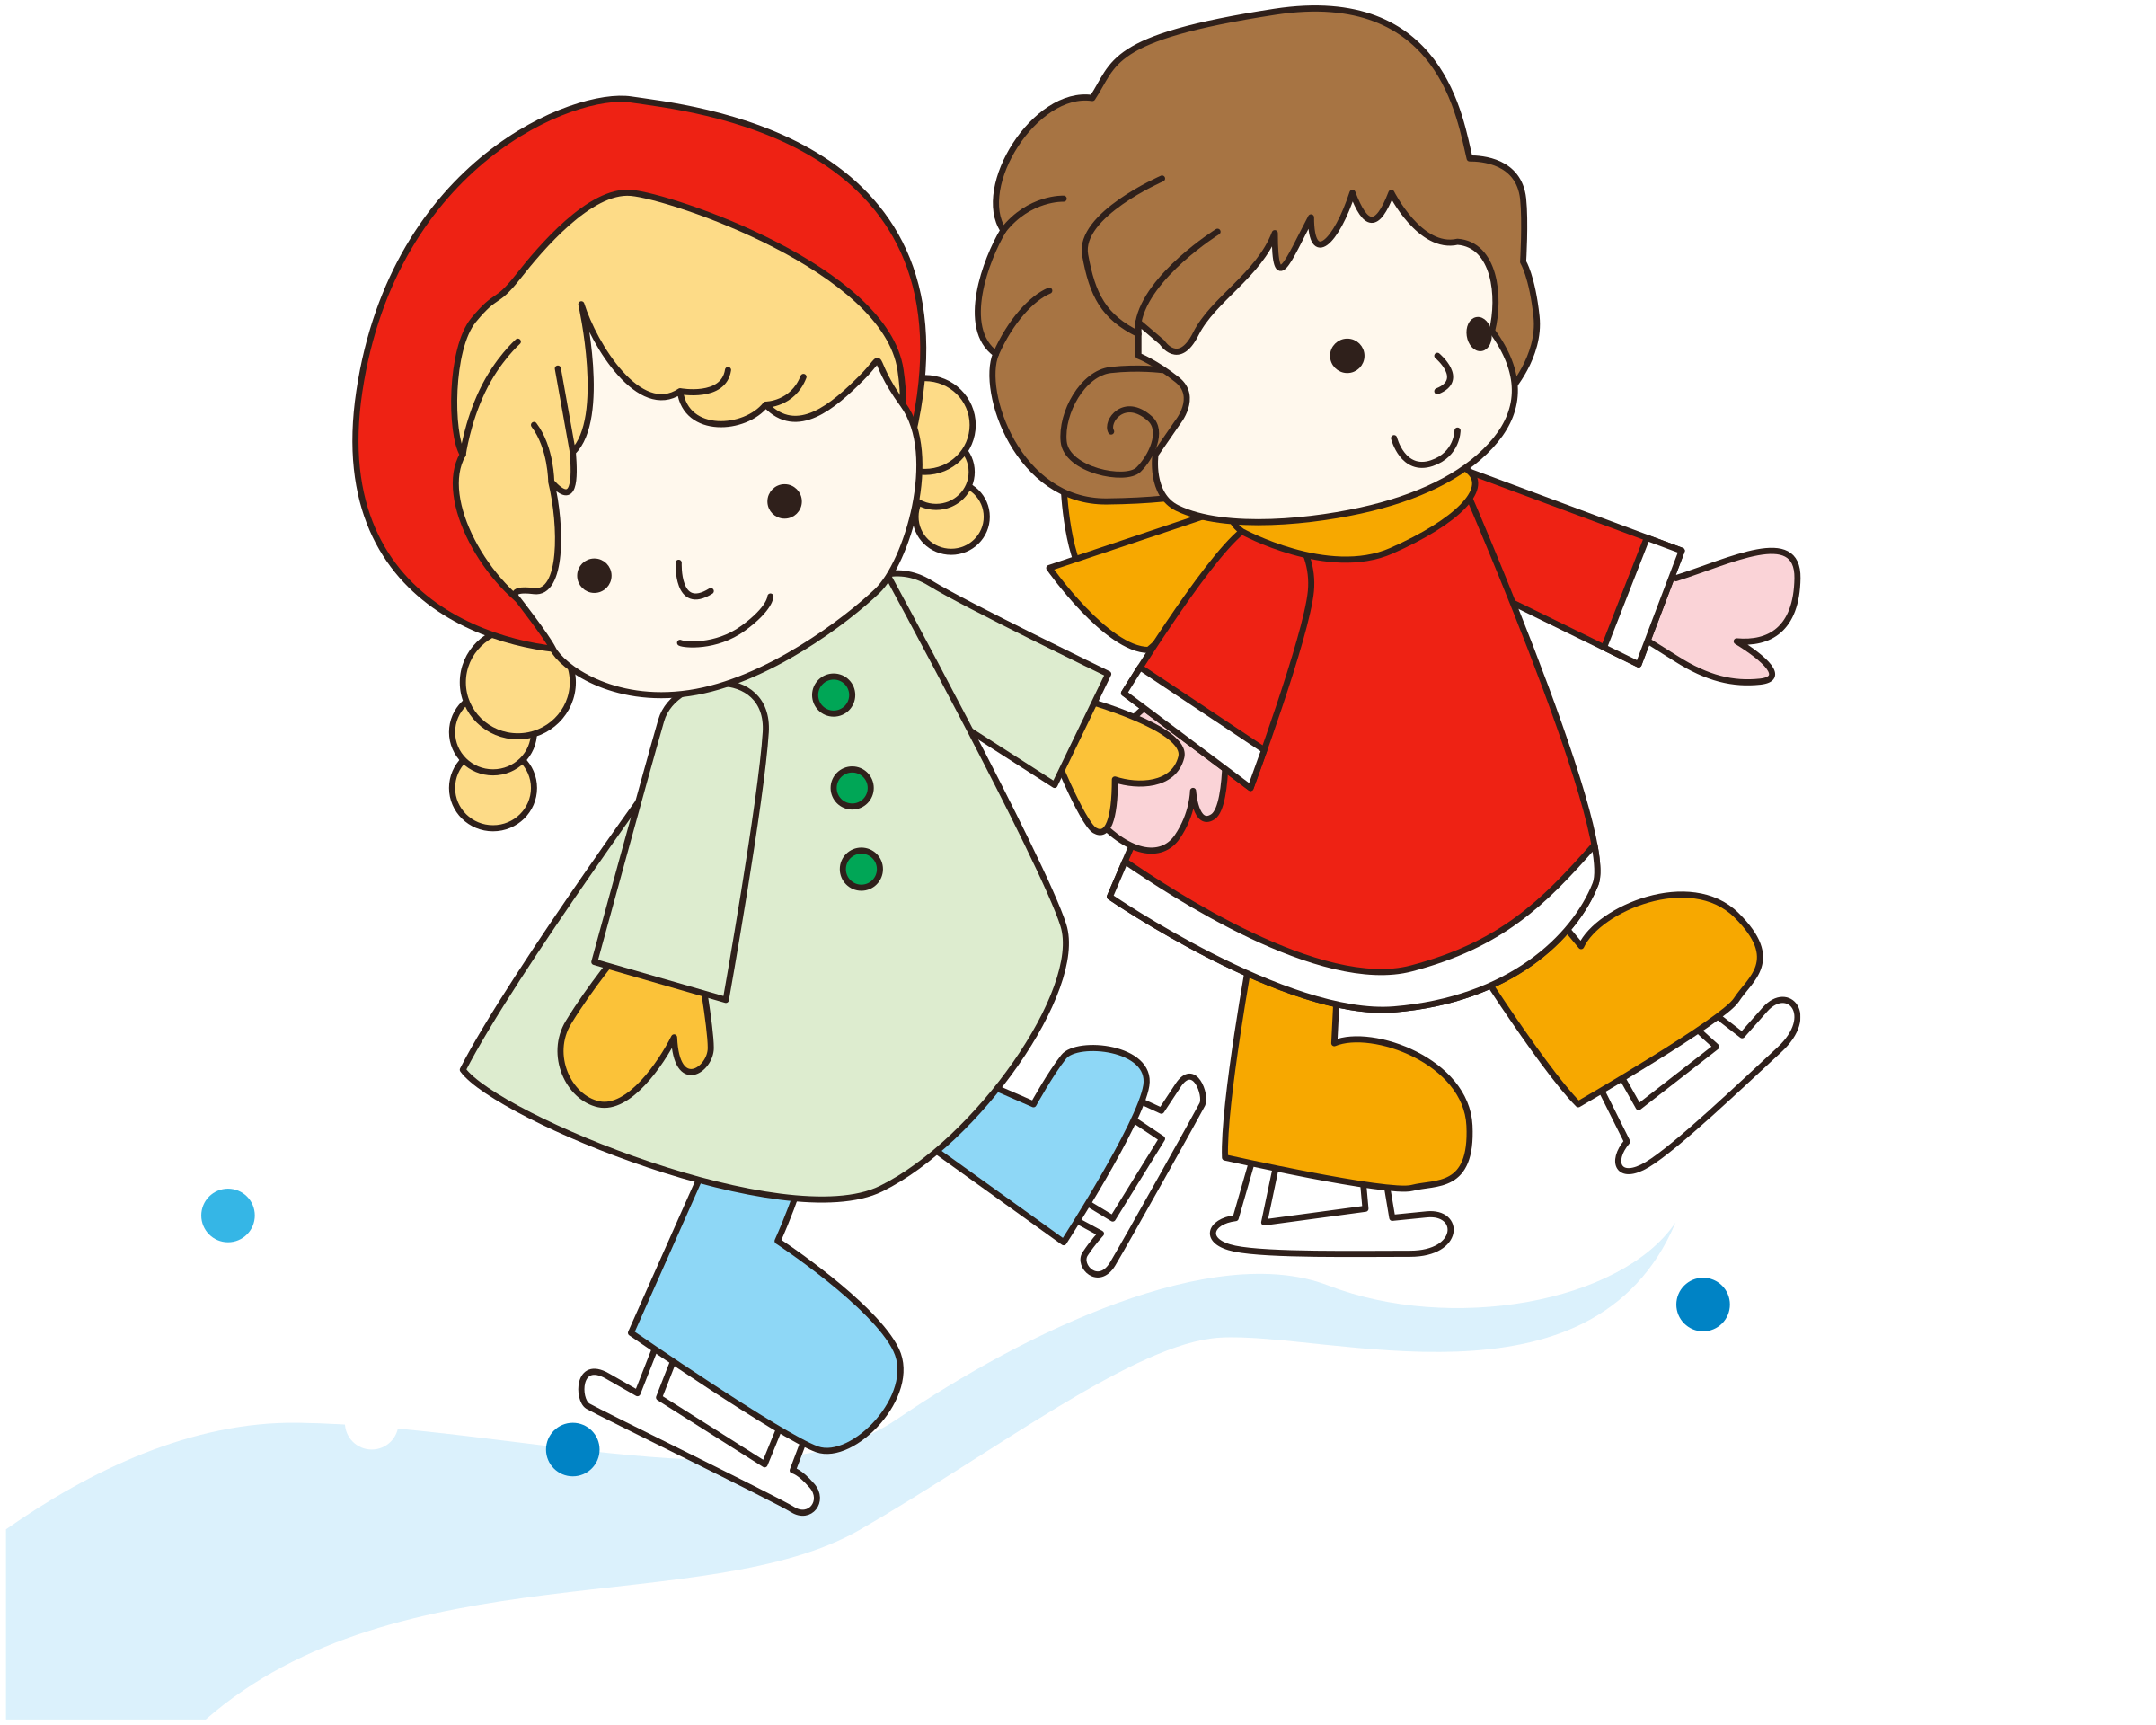 clipart skating kids 5 ice skating clipart free ice skating clipart images black and white